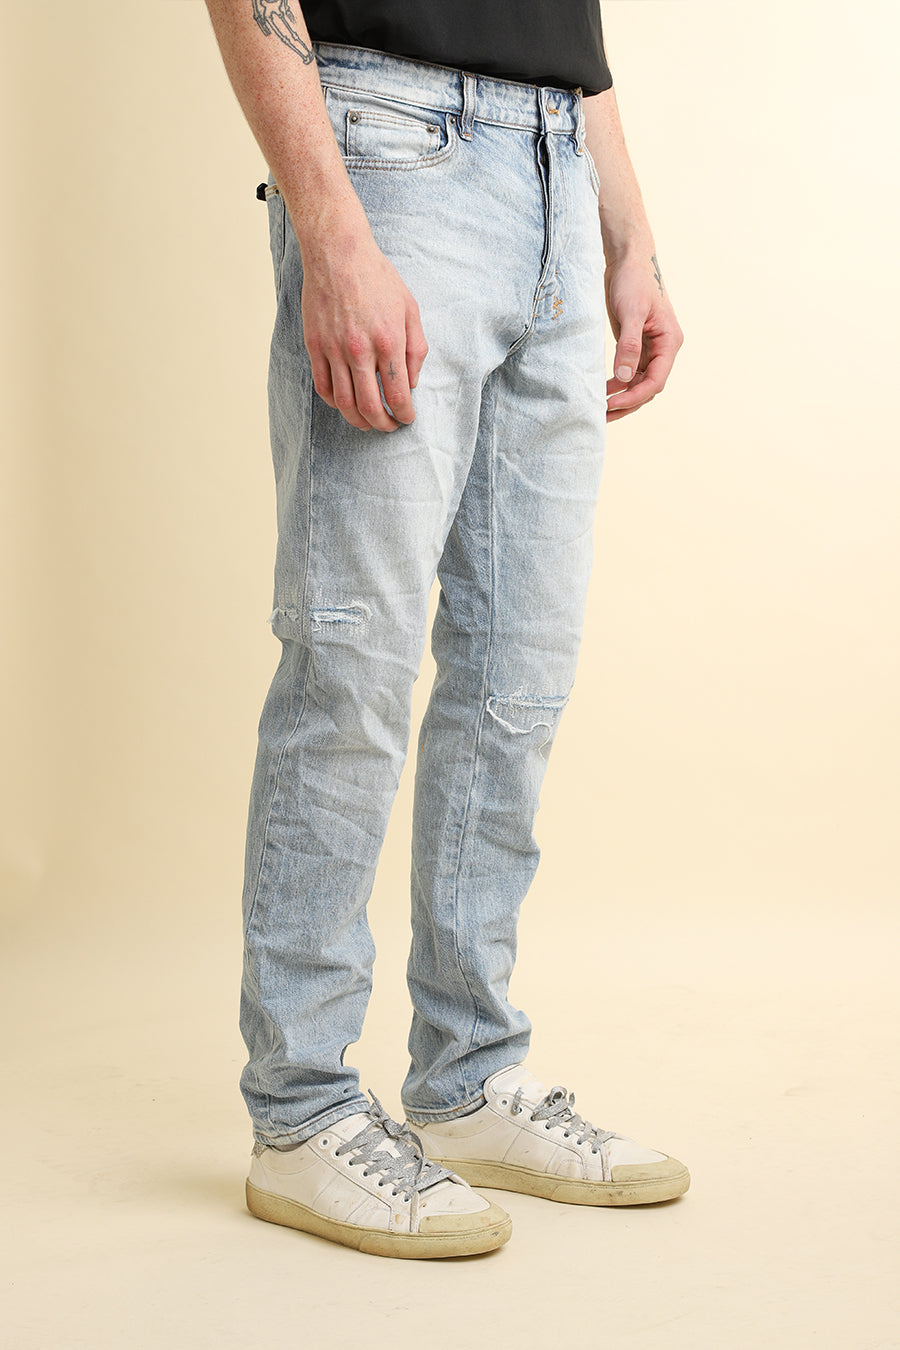 Ksubi - Blue Chitch The Streets Jeans